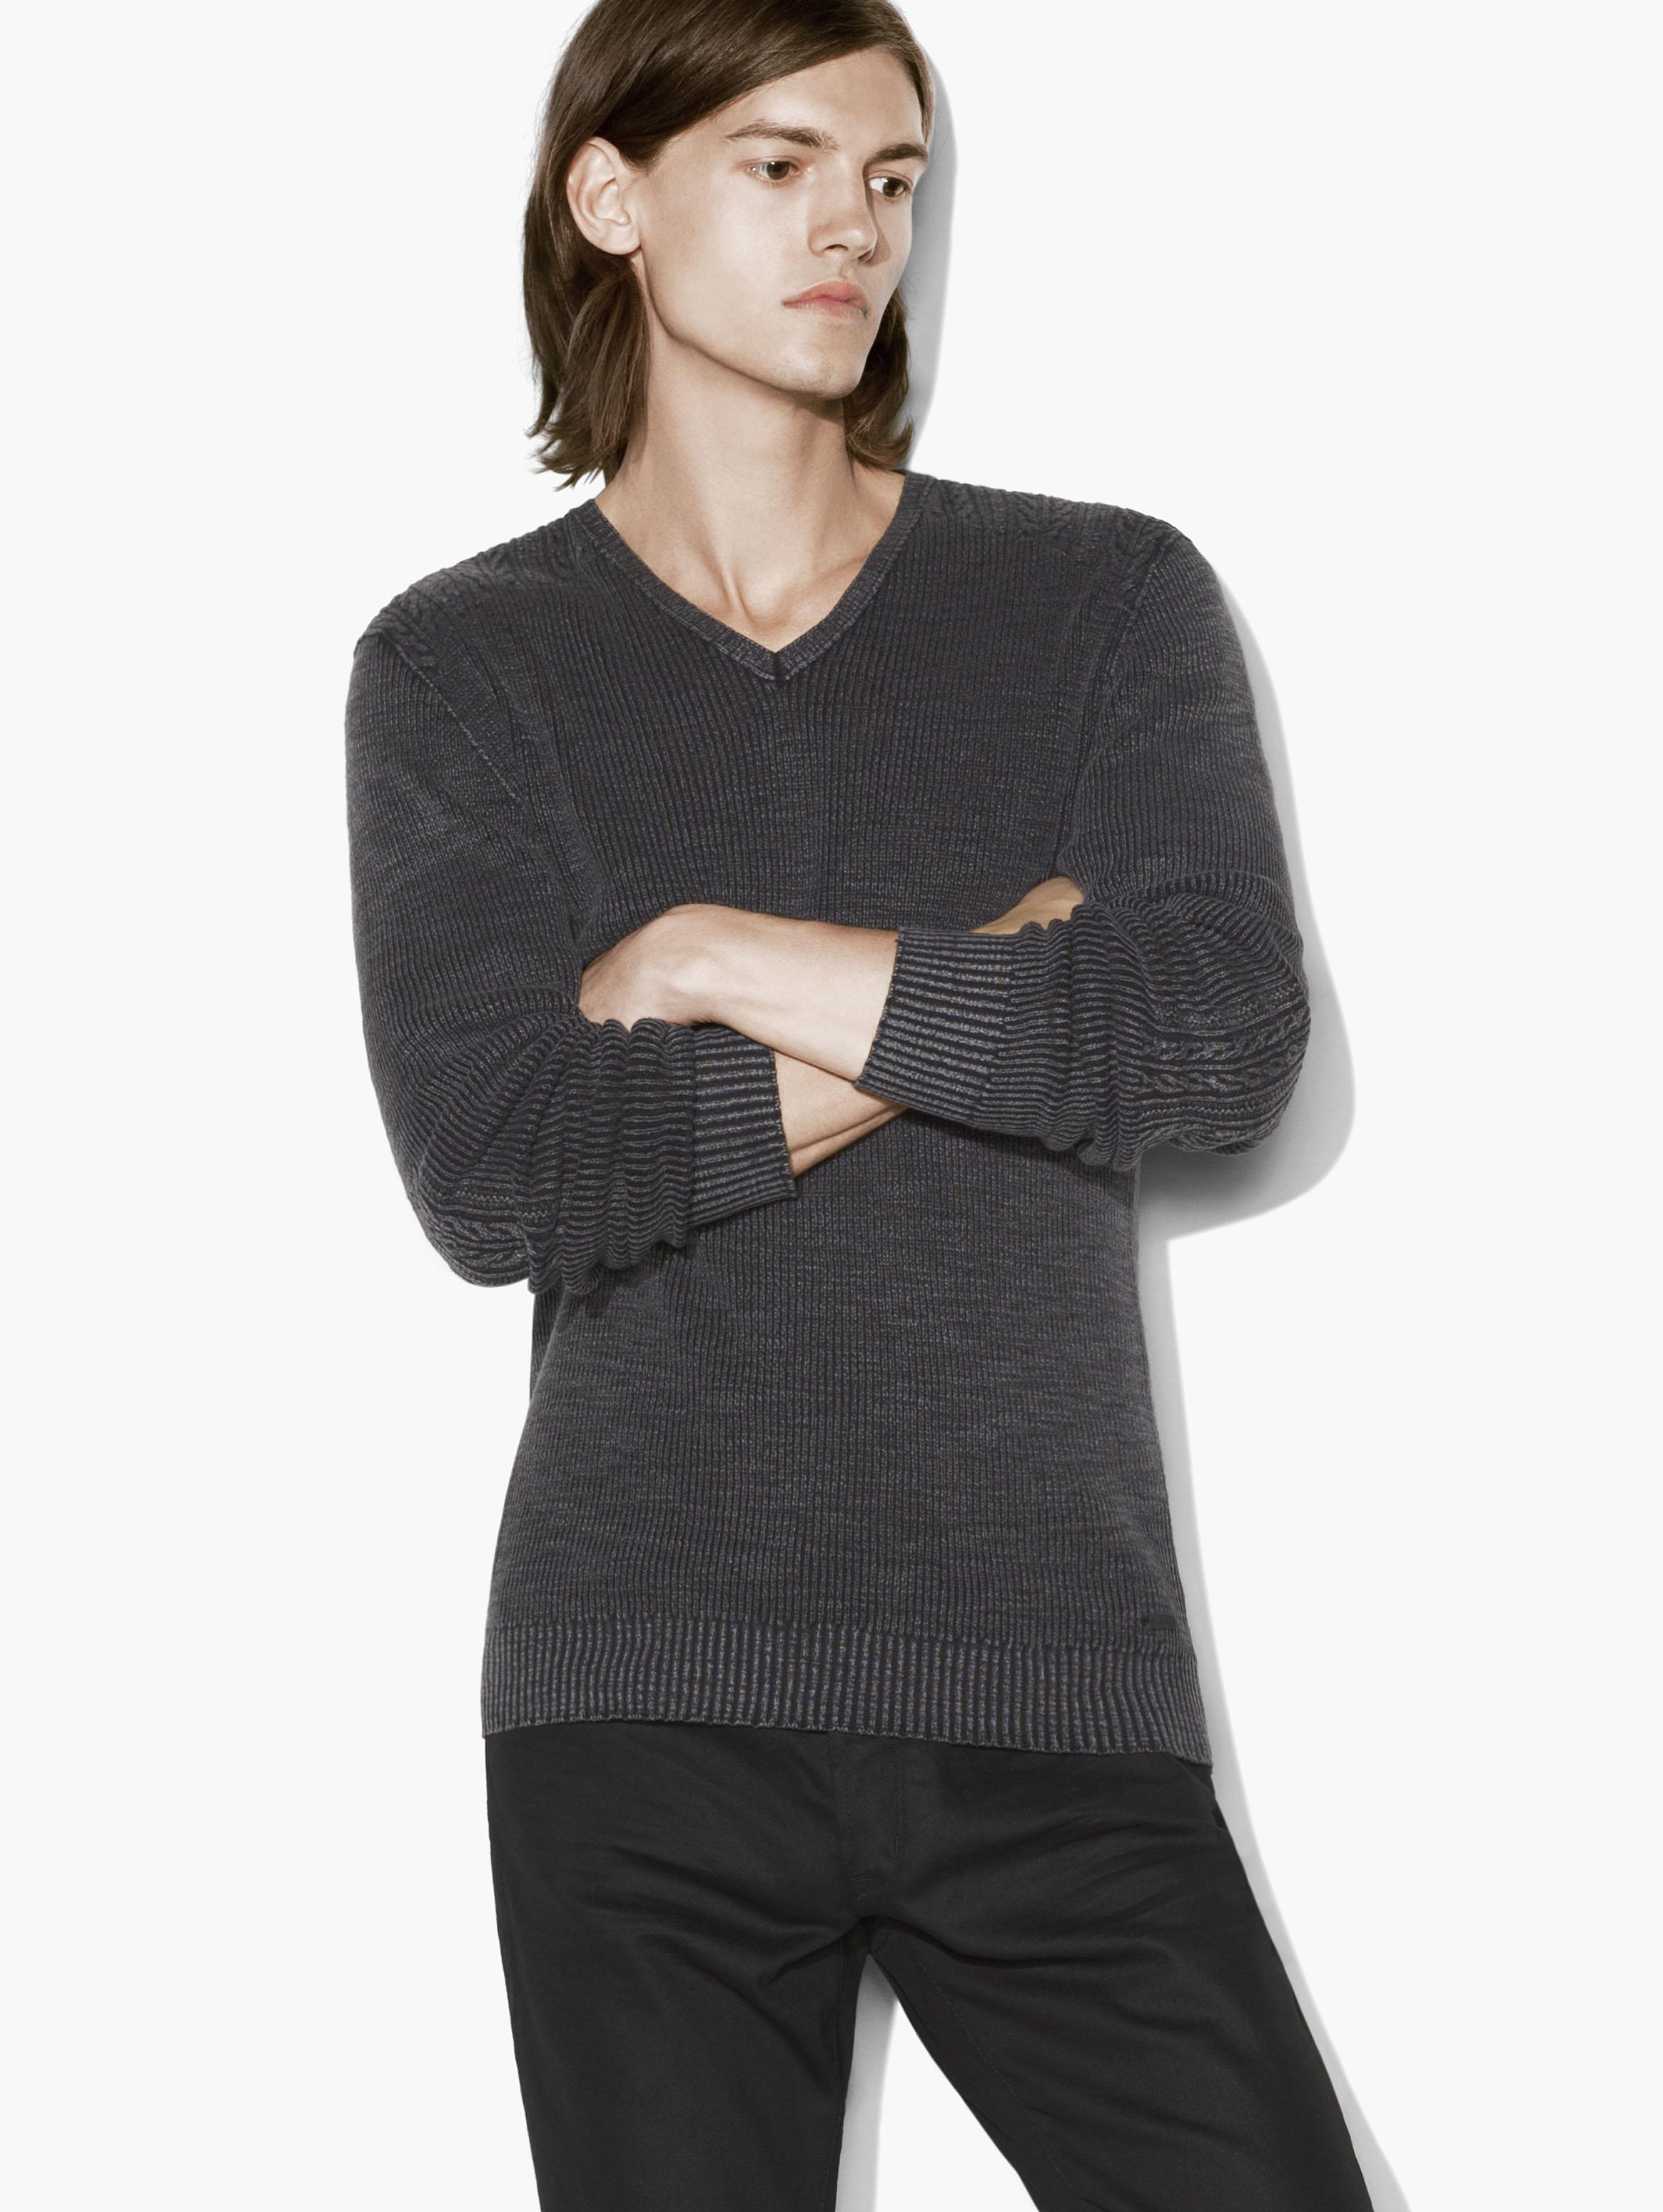 CABLE DETAILED V-NECK SWEATER